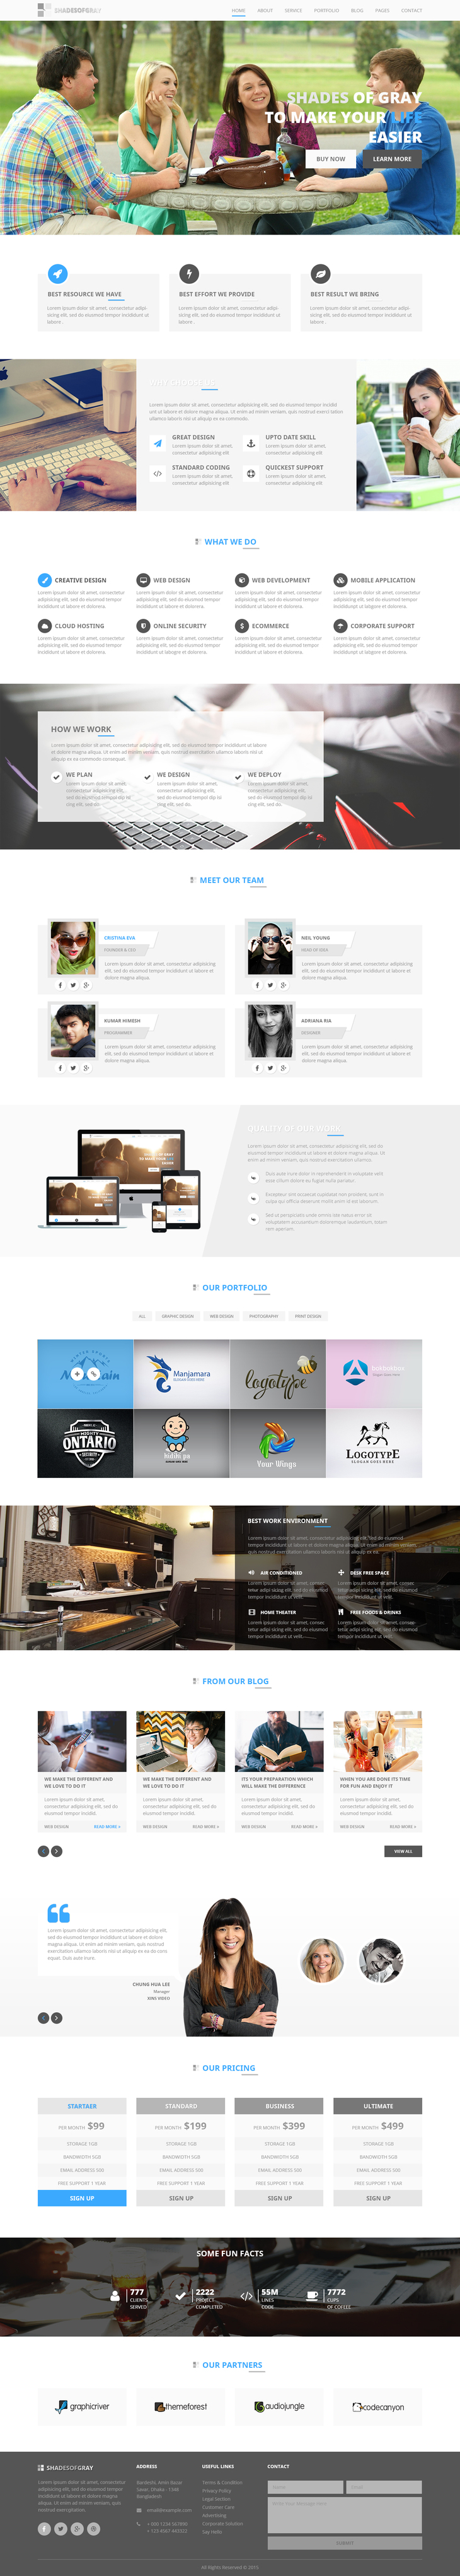 15 Free PSD website templates 2015 | Free PSD Templates